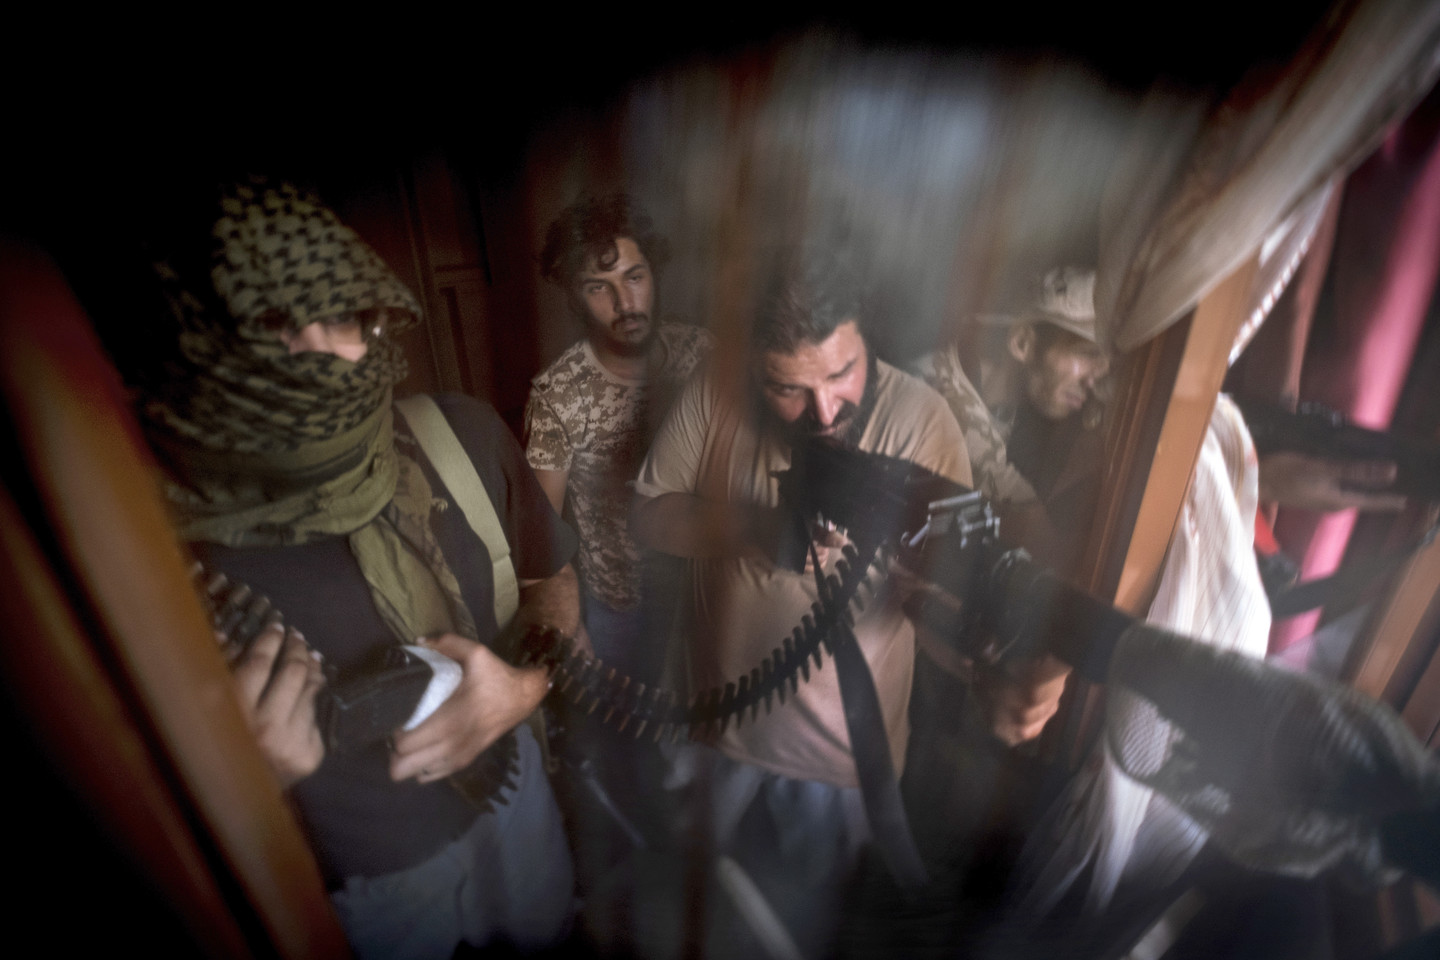 Russia Is Intervening in Libya. Should We Care?